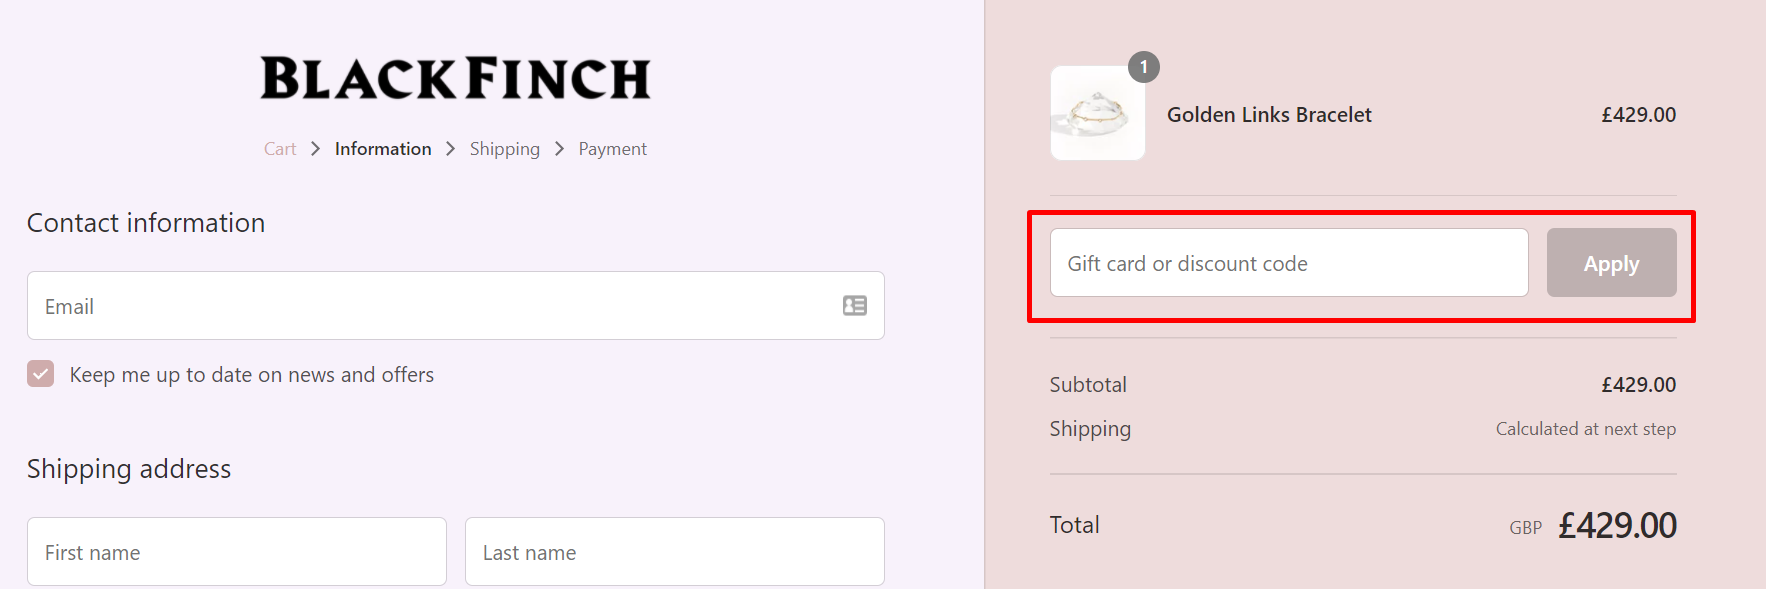 How do I use my Black Finch Jewellery discount code?